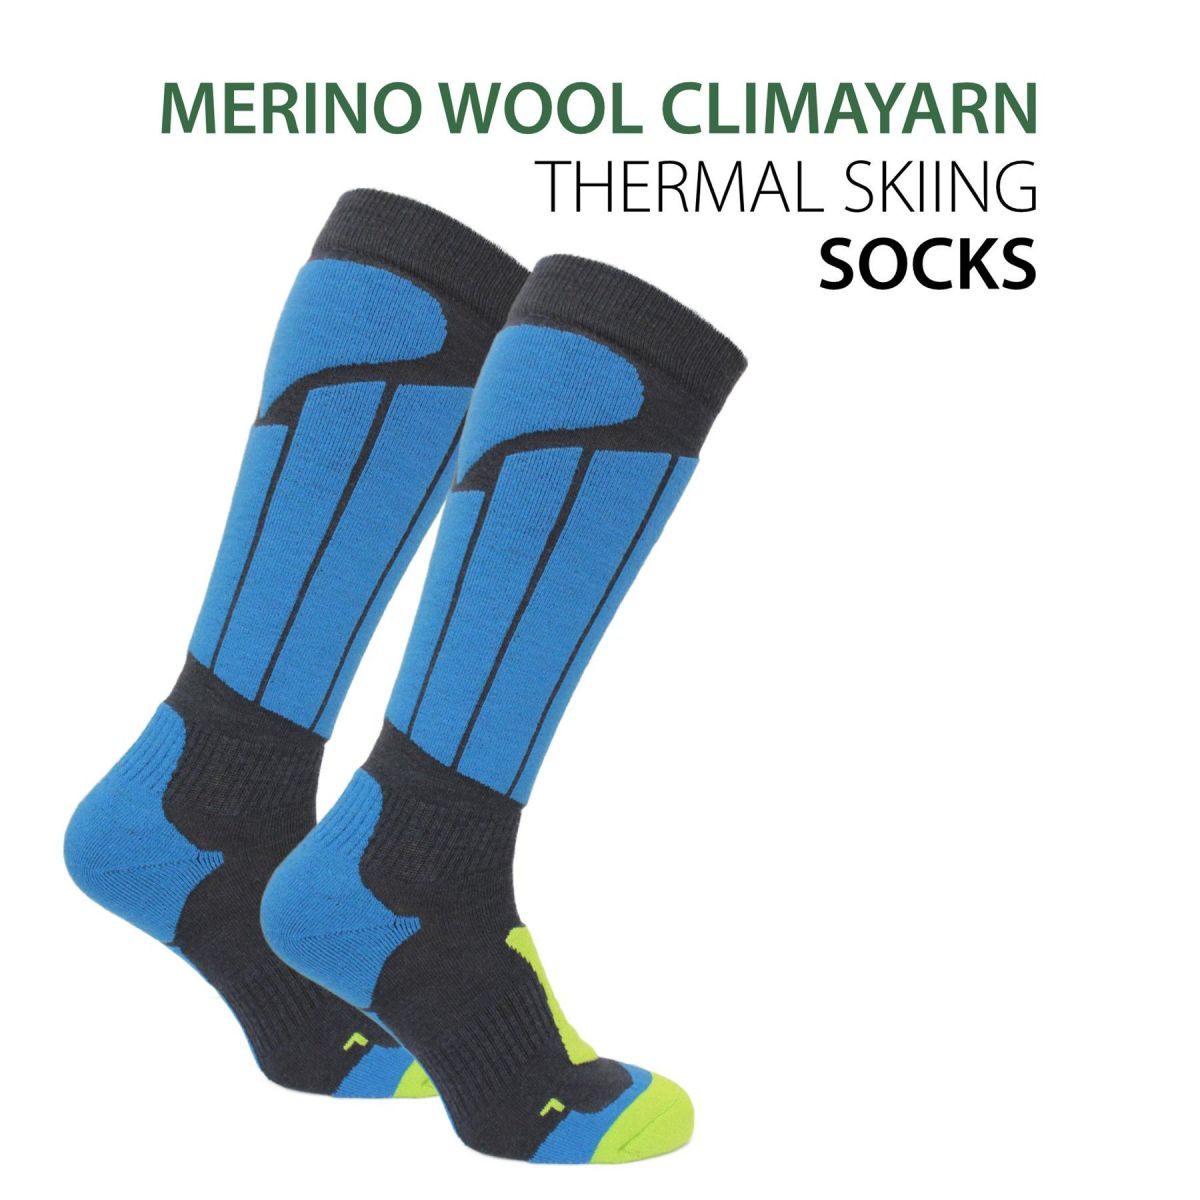 Norfolk Thermal skiing and snowboarding socks - Aspen